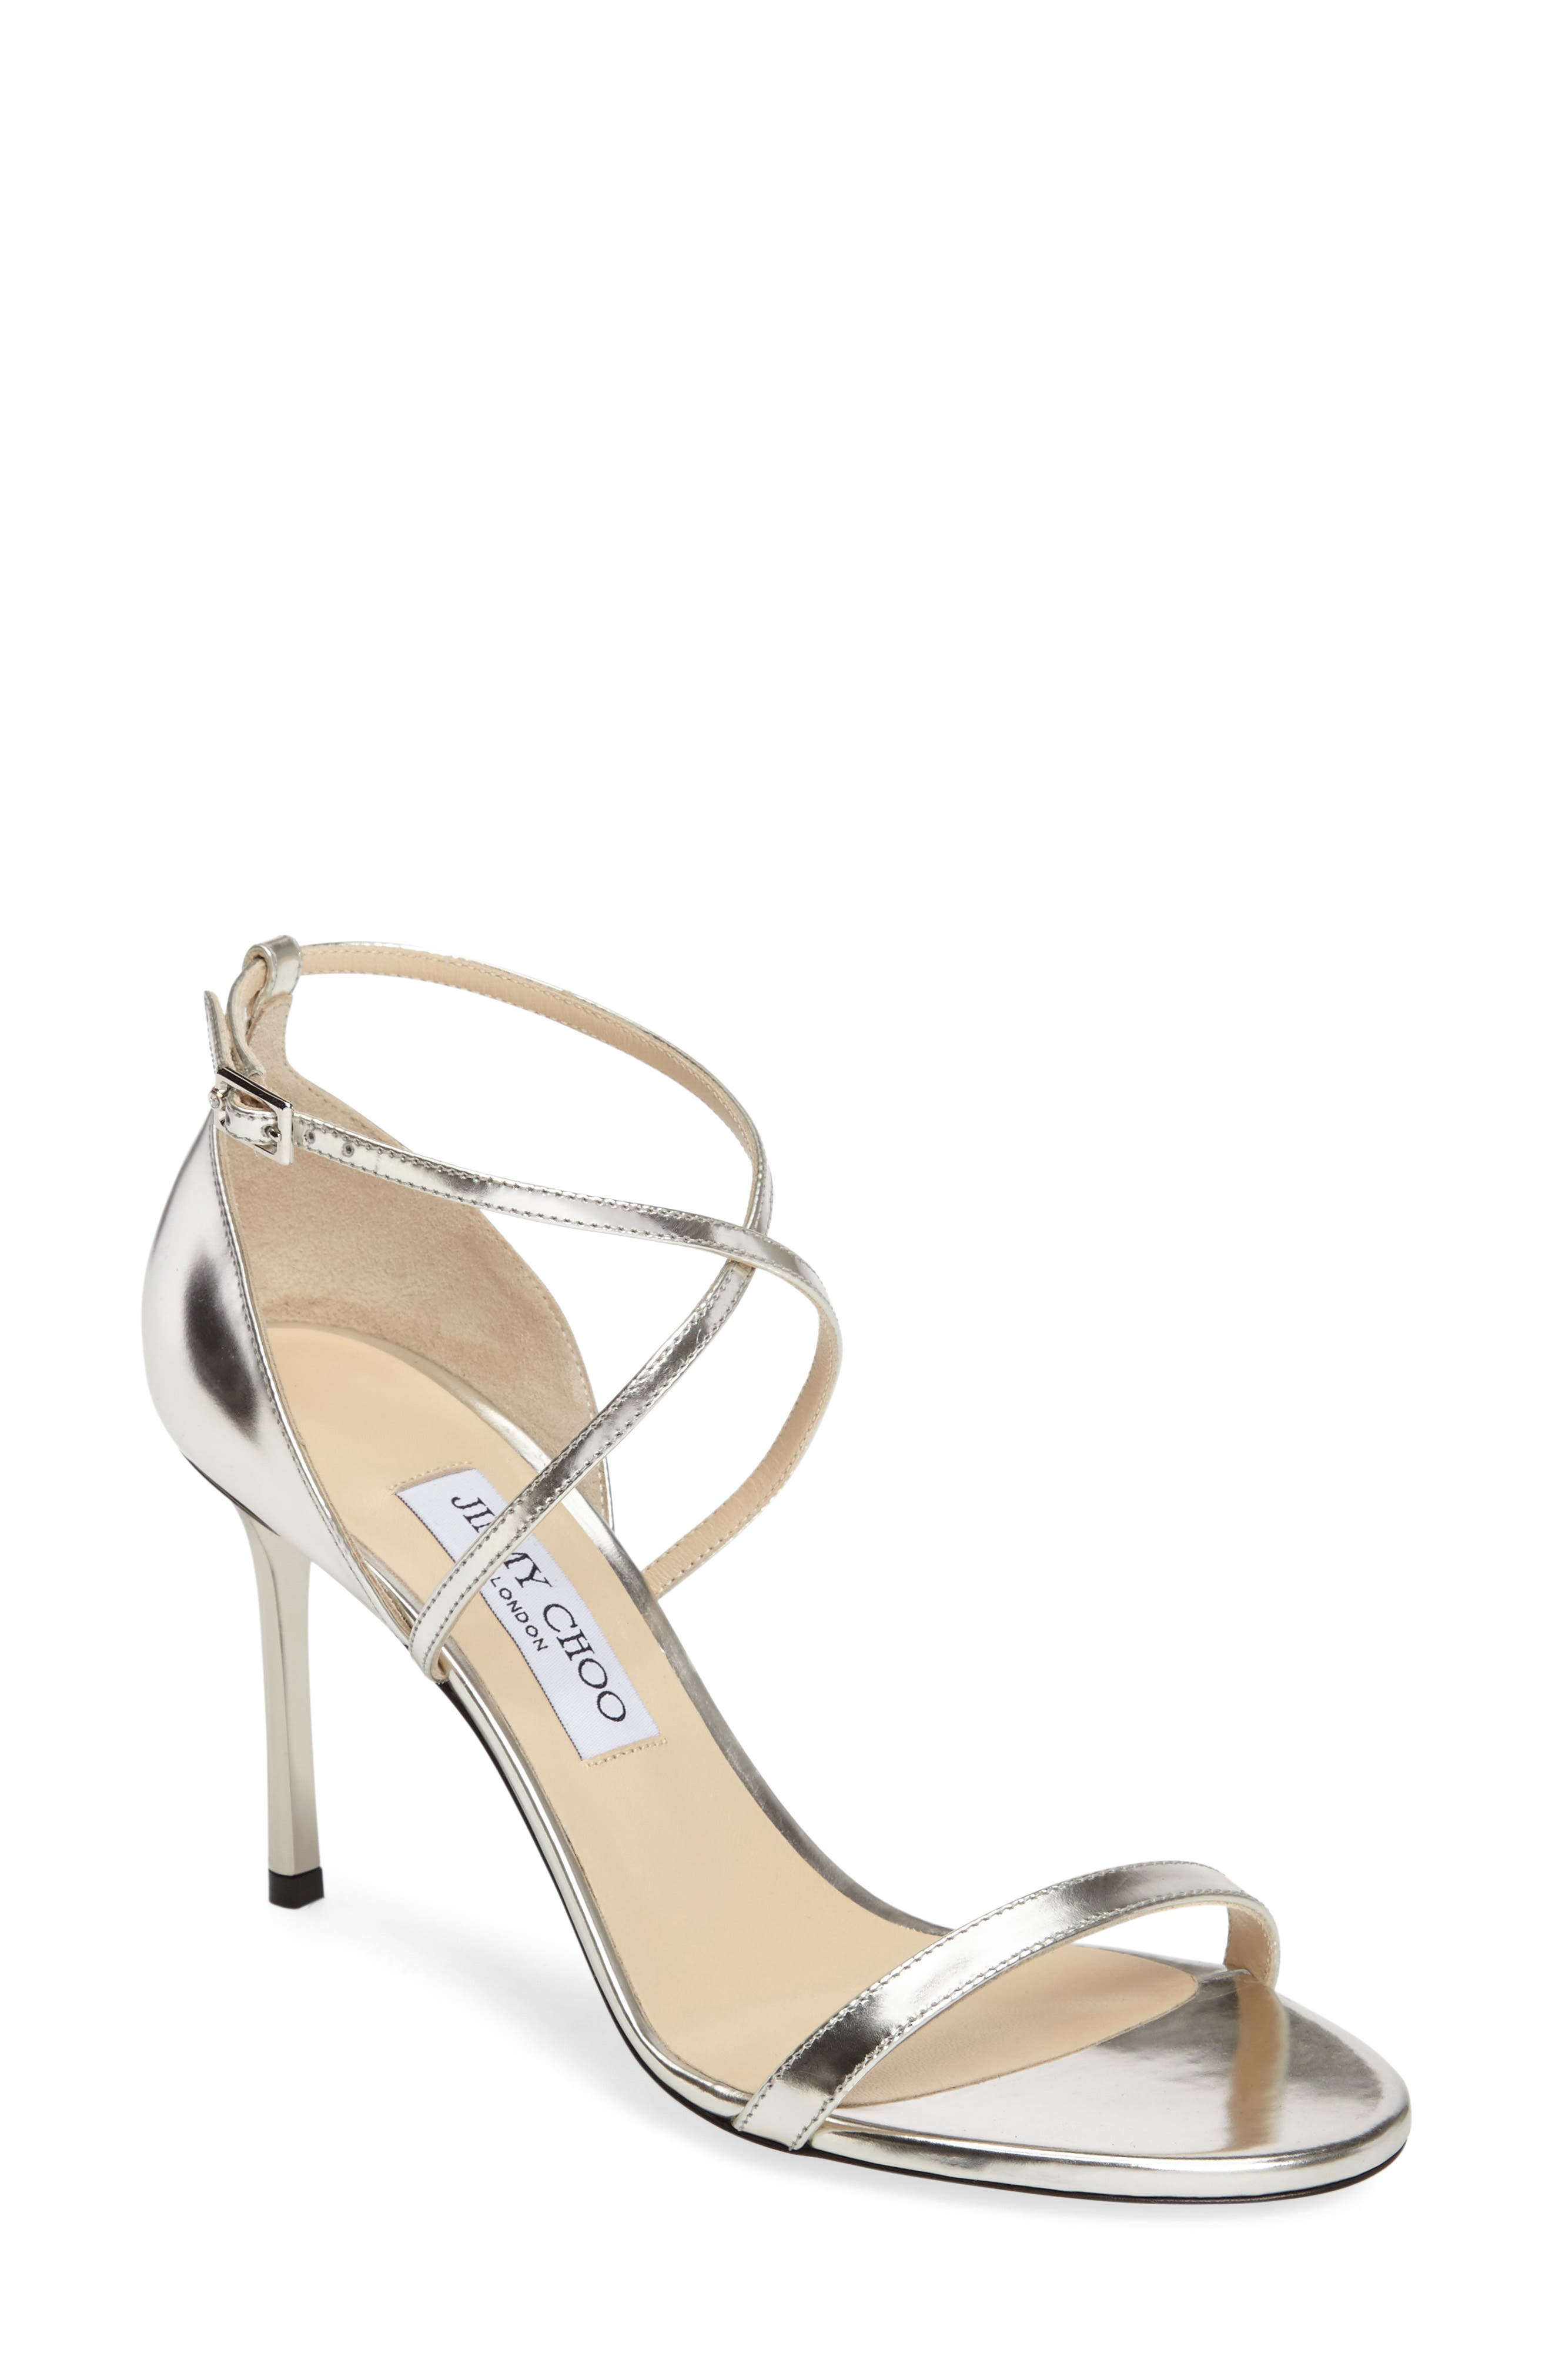 68a003d05bf4 jimmy choo shoes for sale   OFF72% Discounts